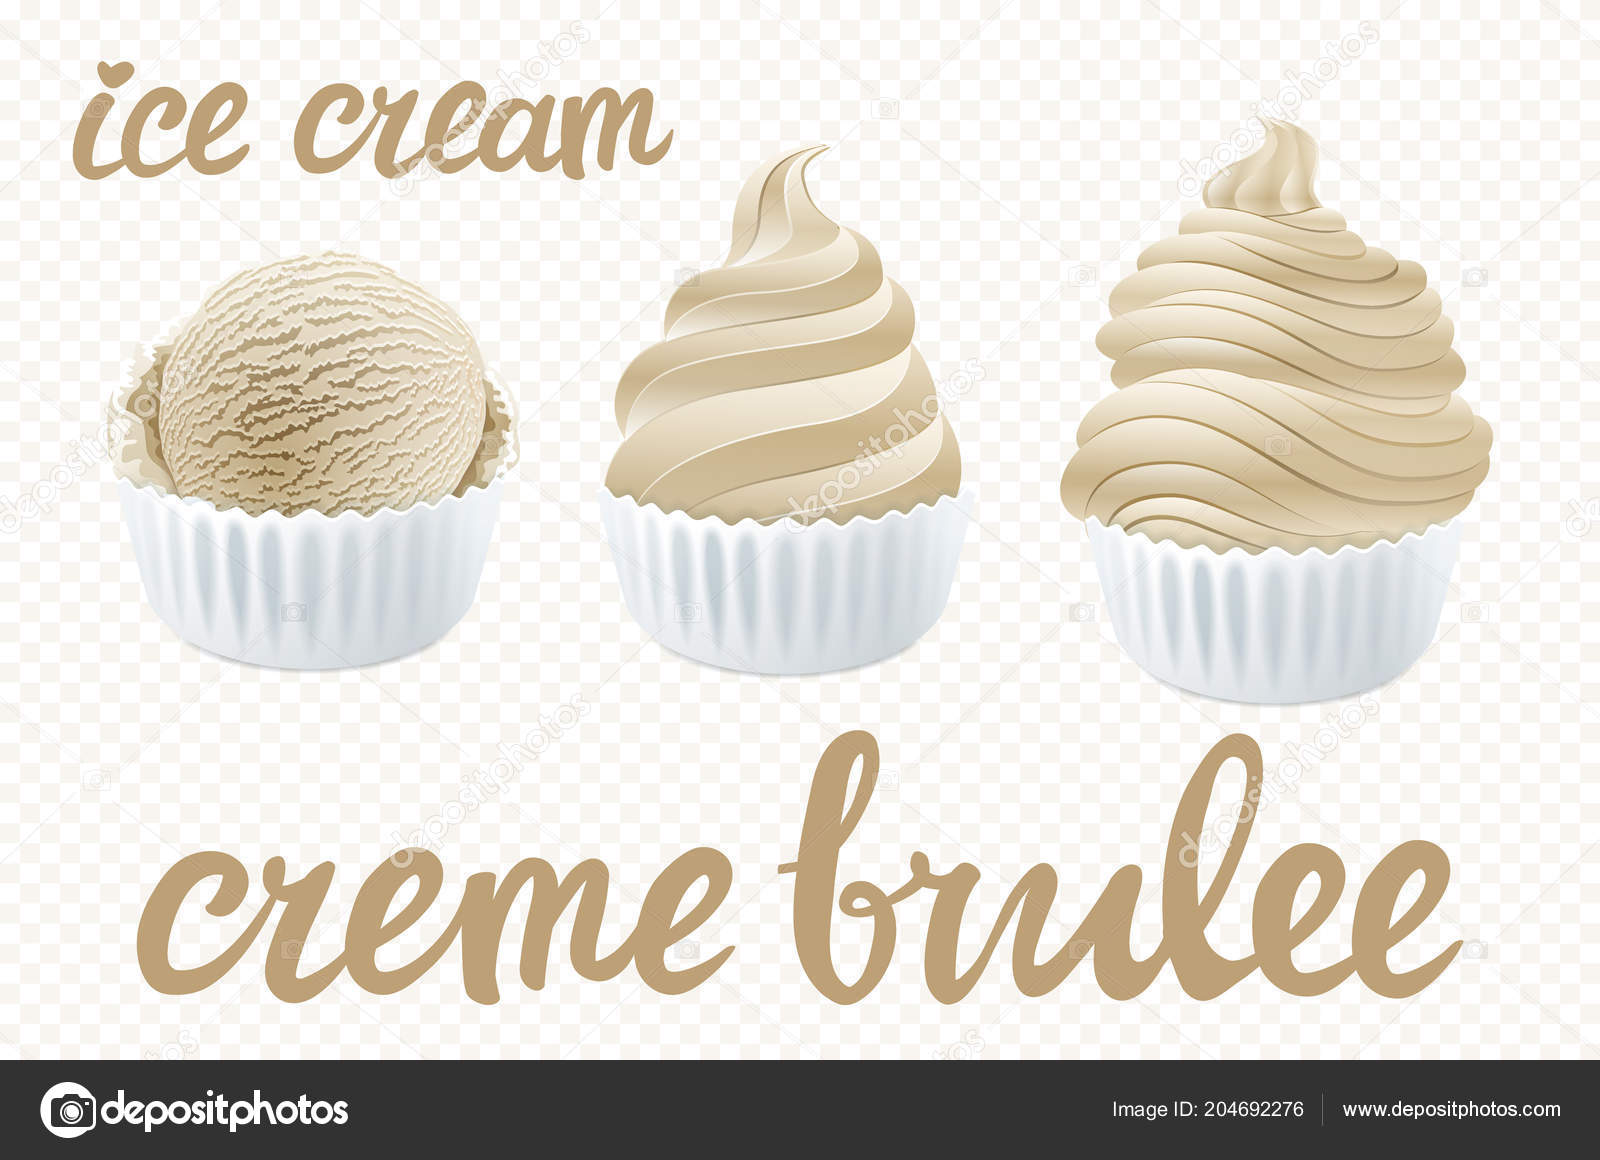 Gut Vector Beige Set Ice Cream Scoops Poster Design Creme Brulee U2014 Vetor De  Stock